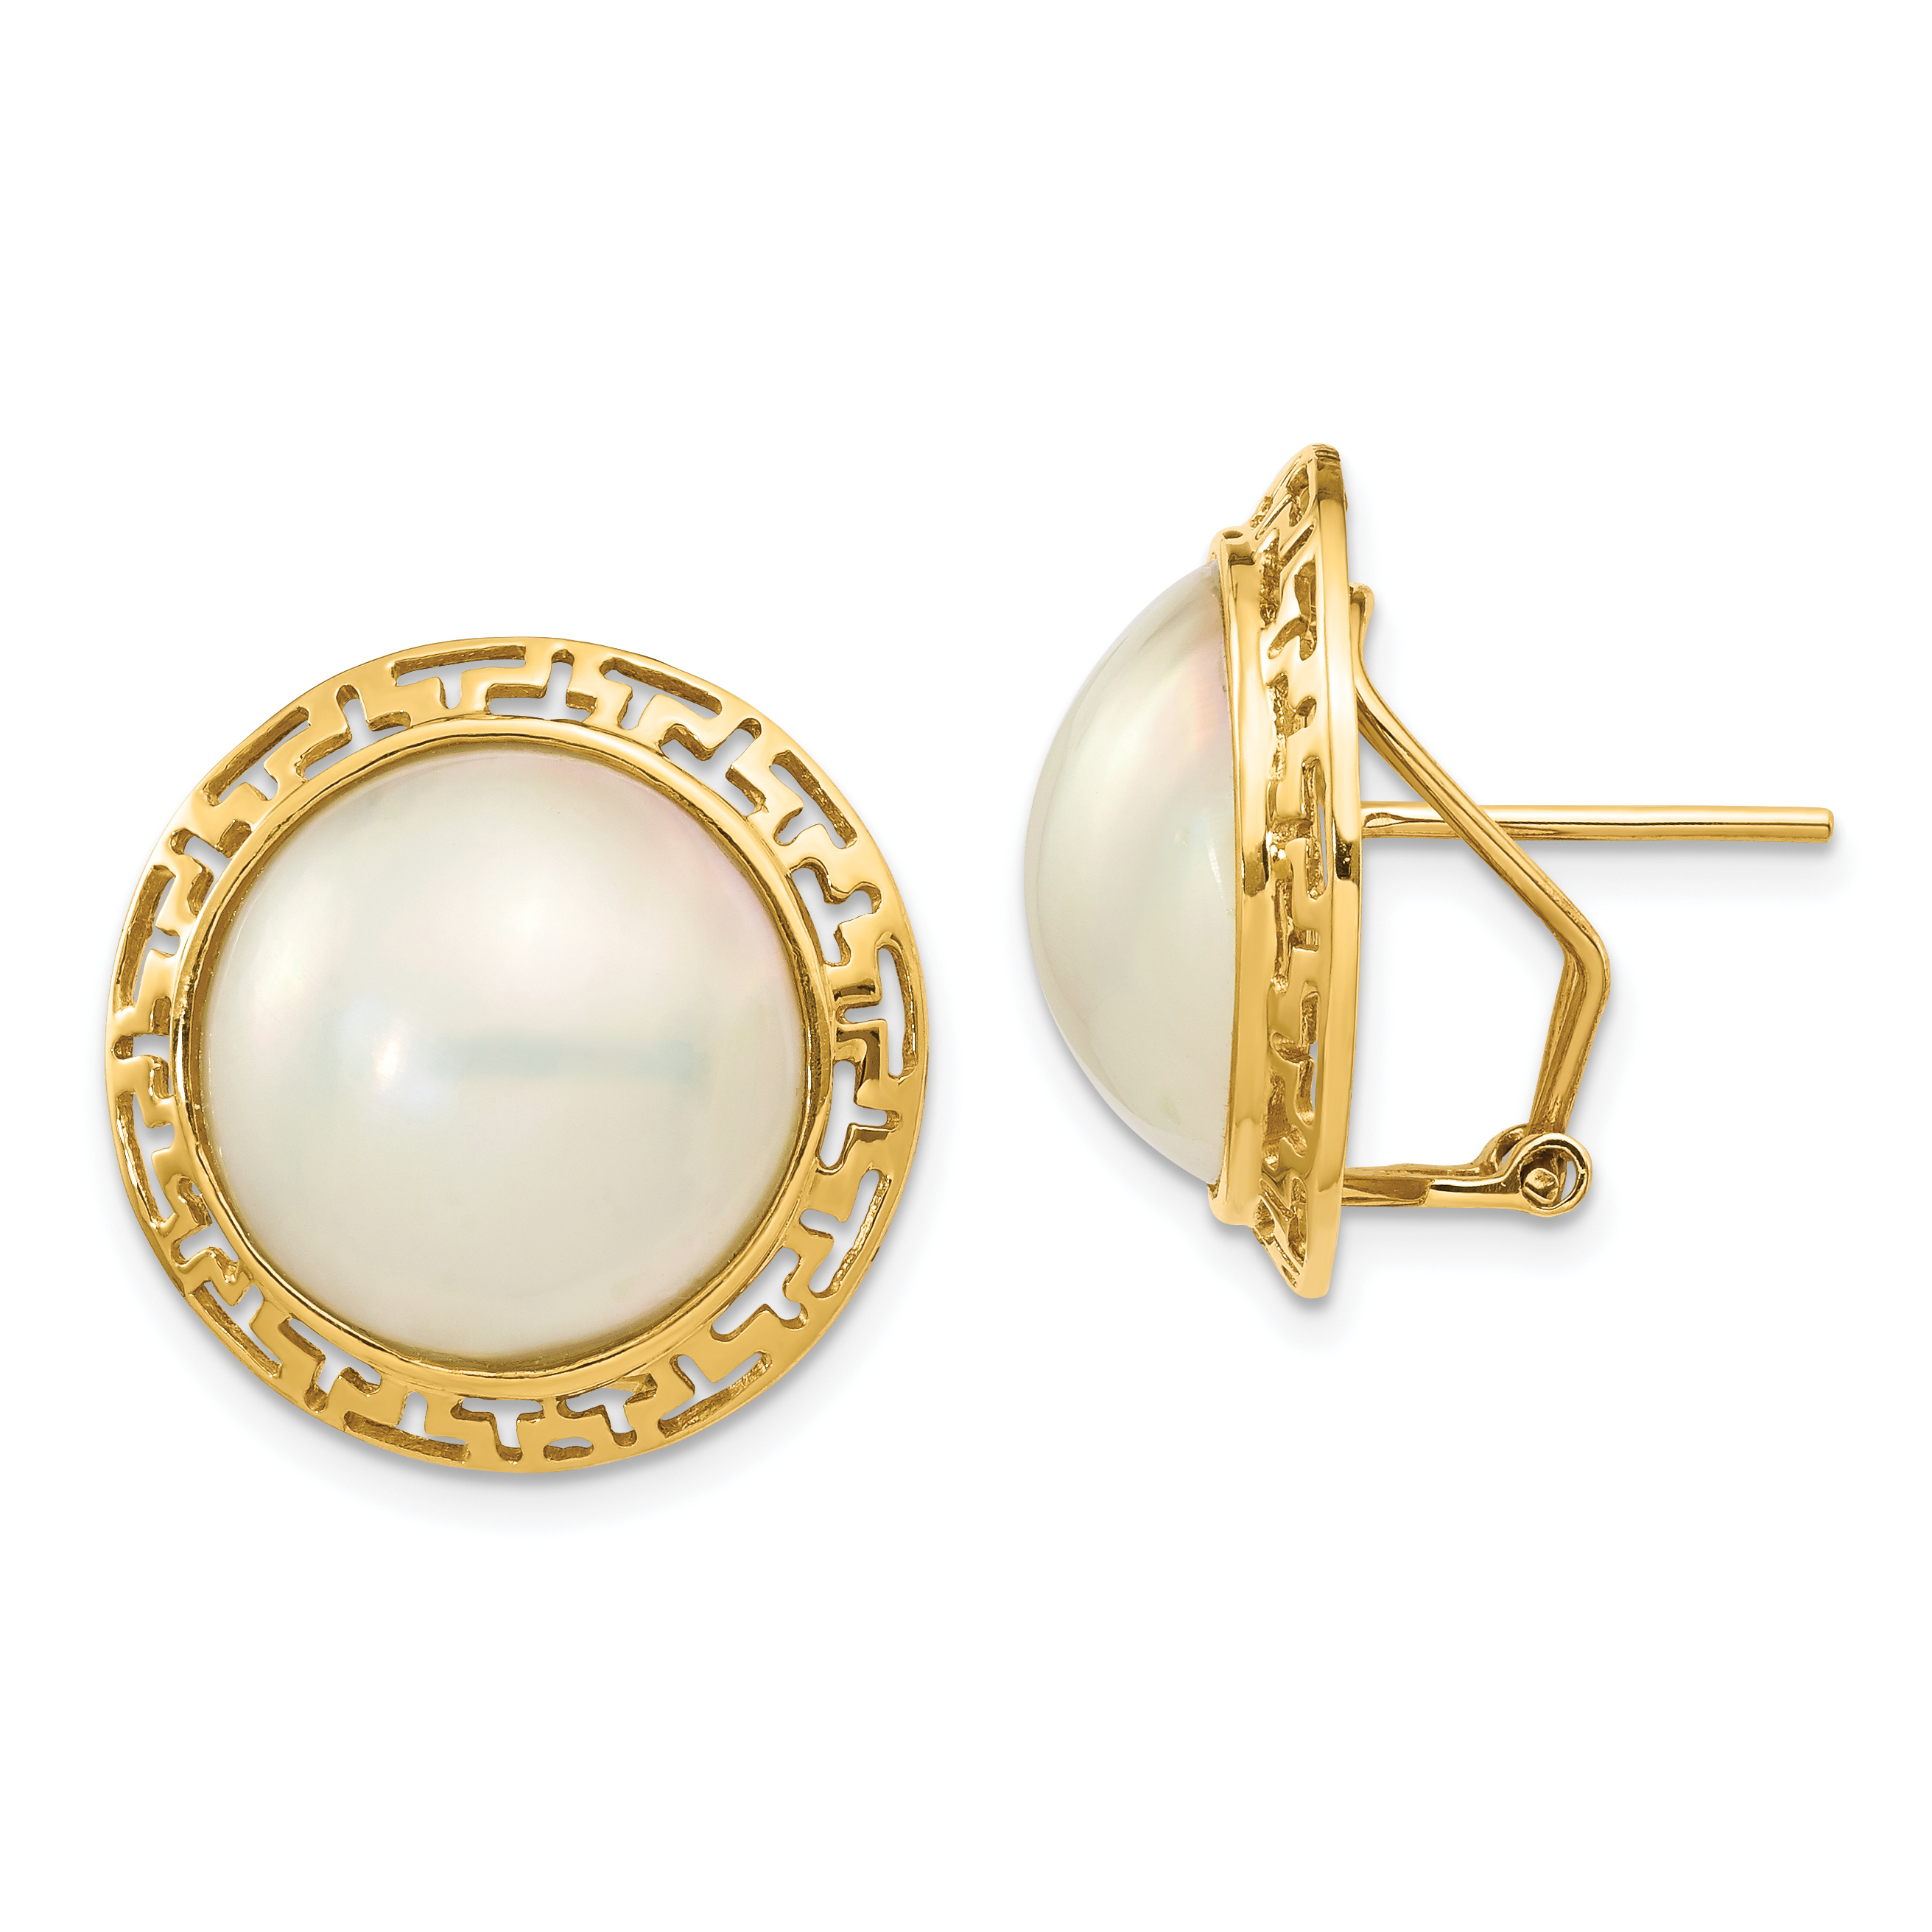 14k 10-11mm White Freshwater Cultured Mabe Pearl Post Earrings